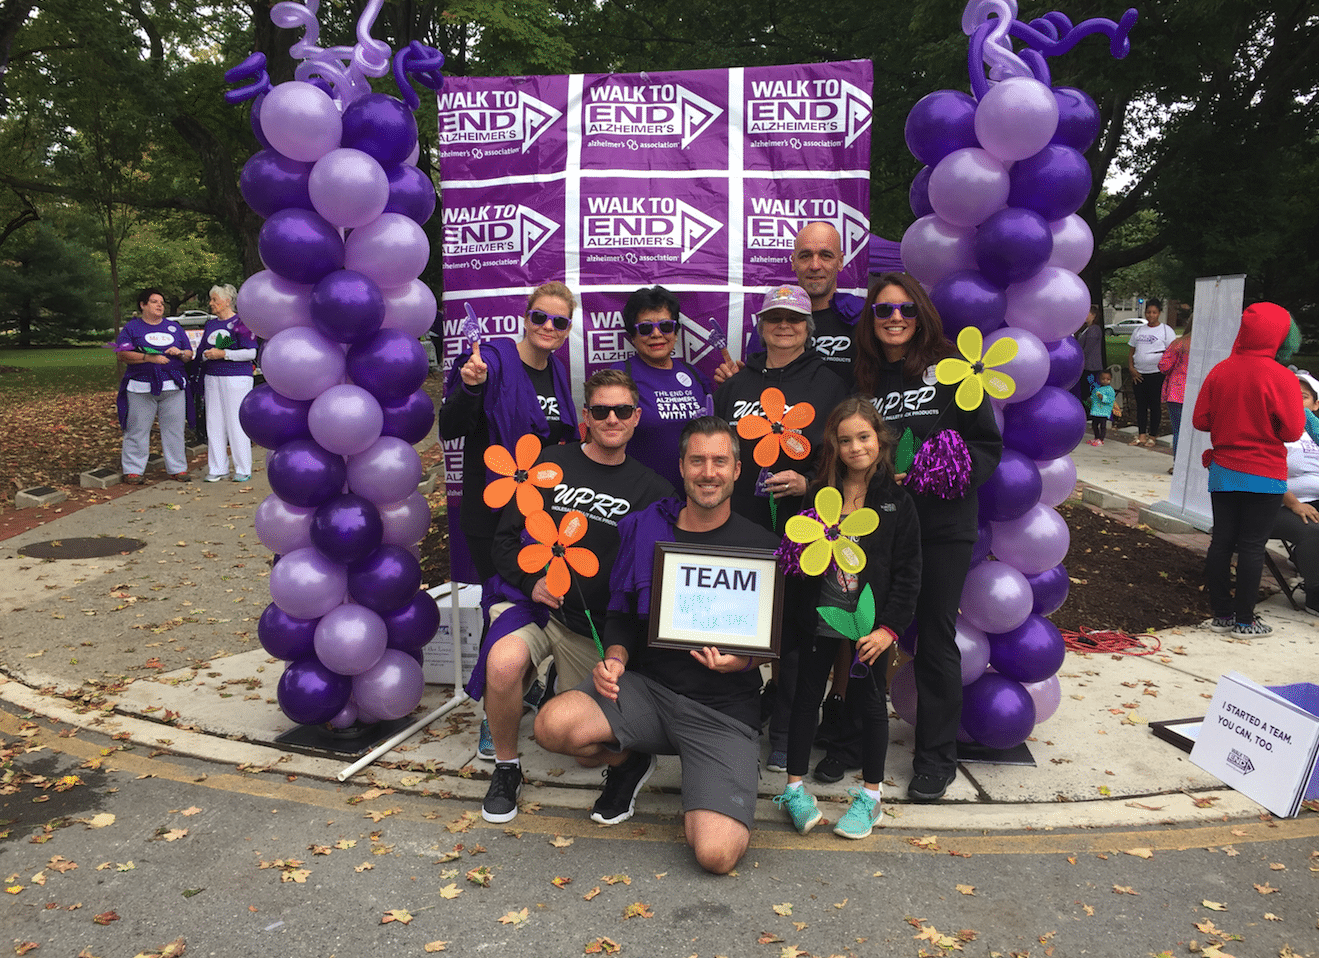 walk-to-end-alzheimers-copy